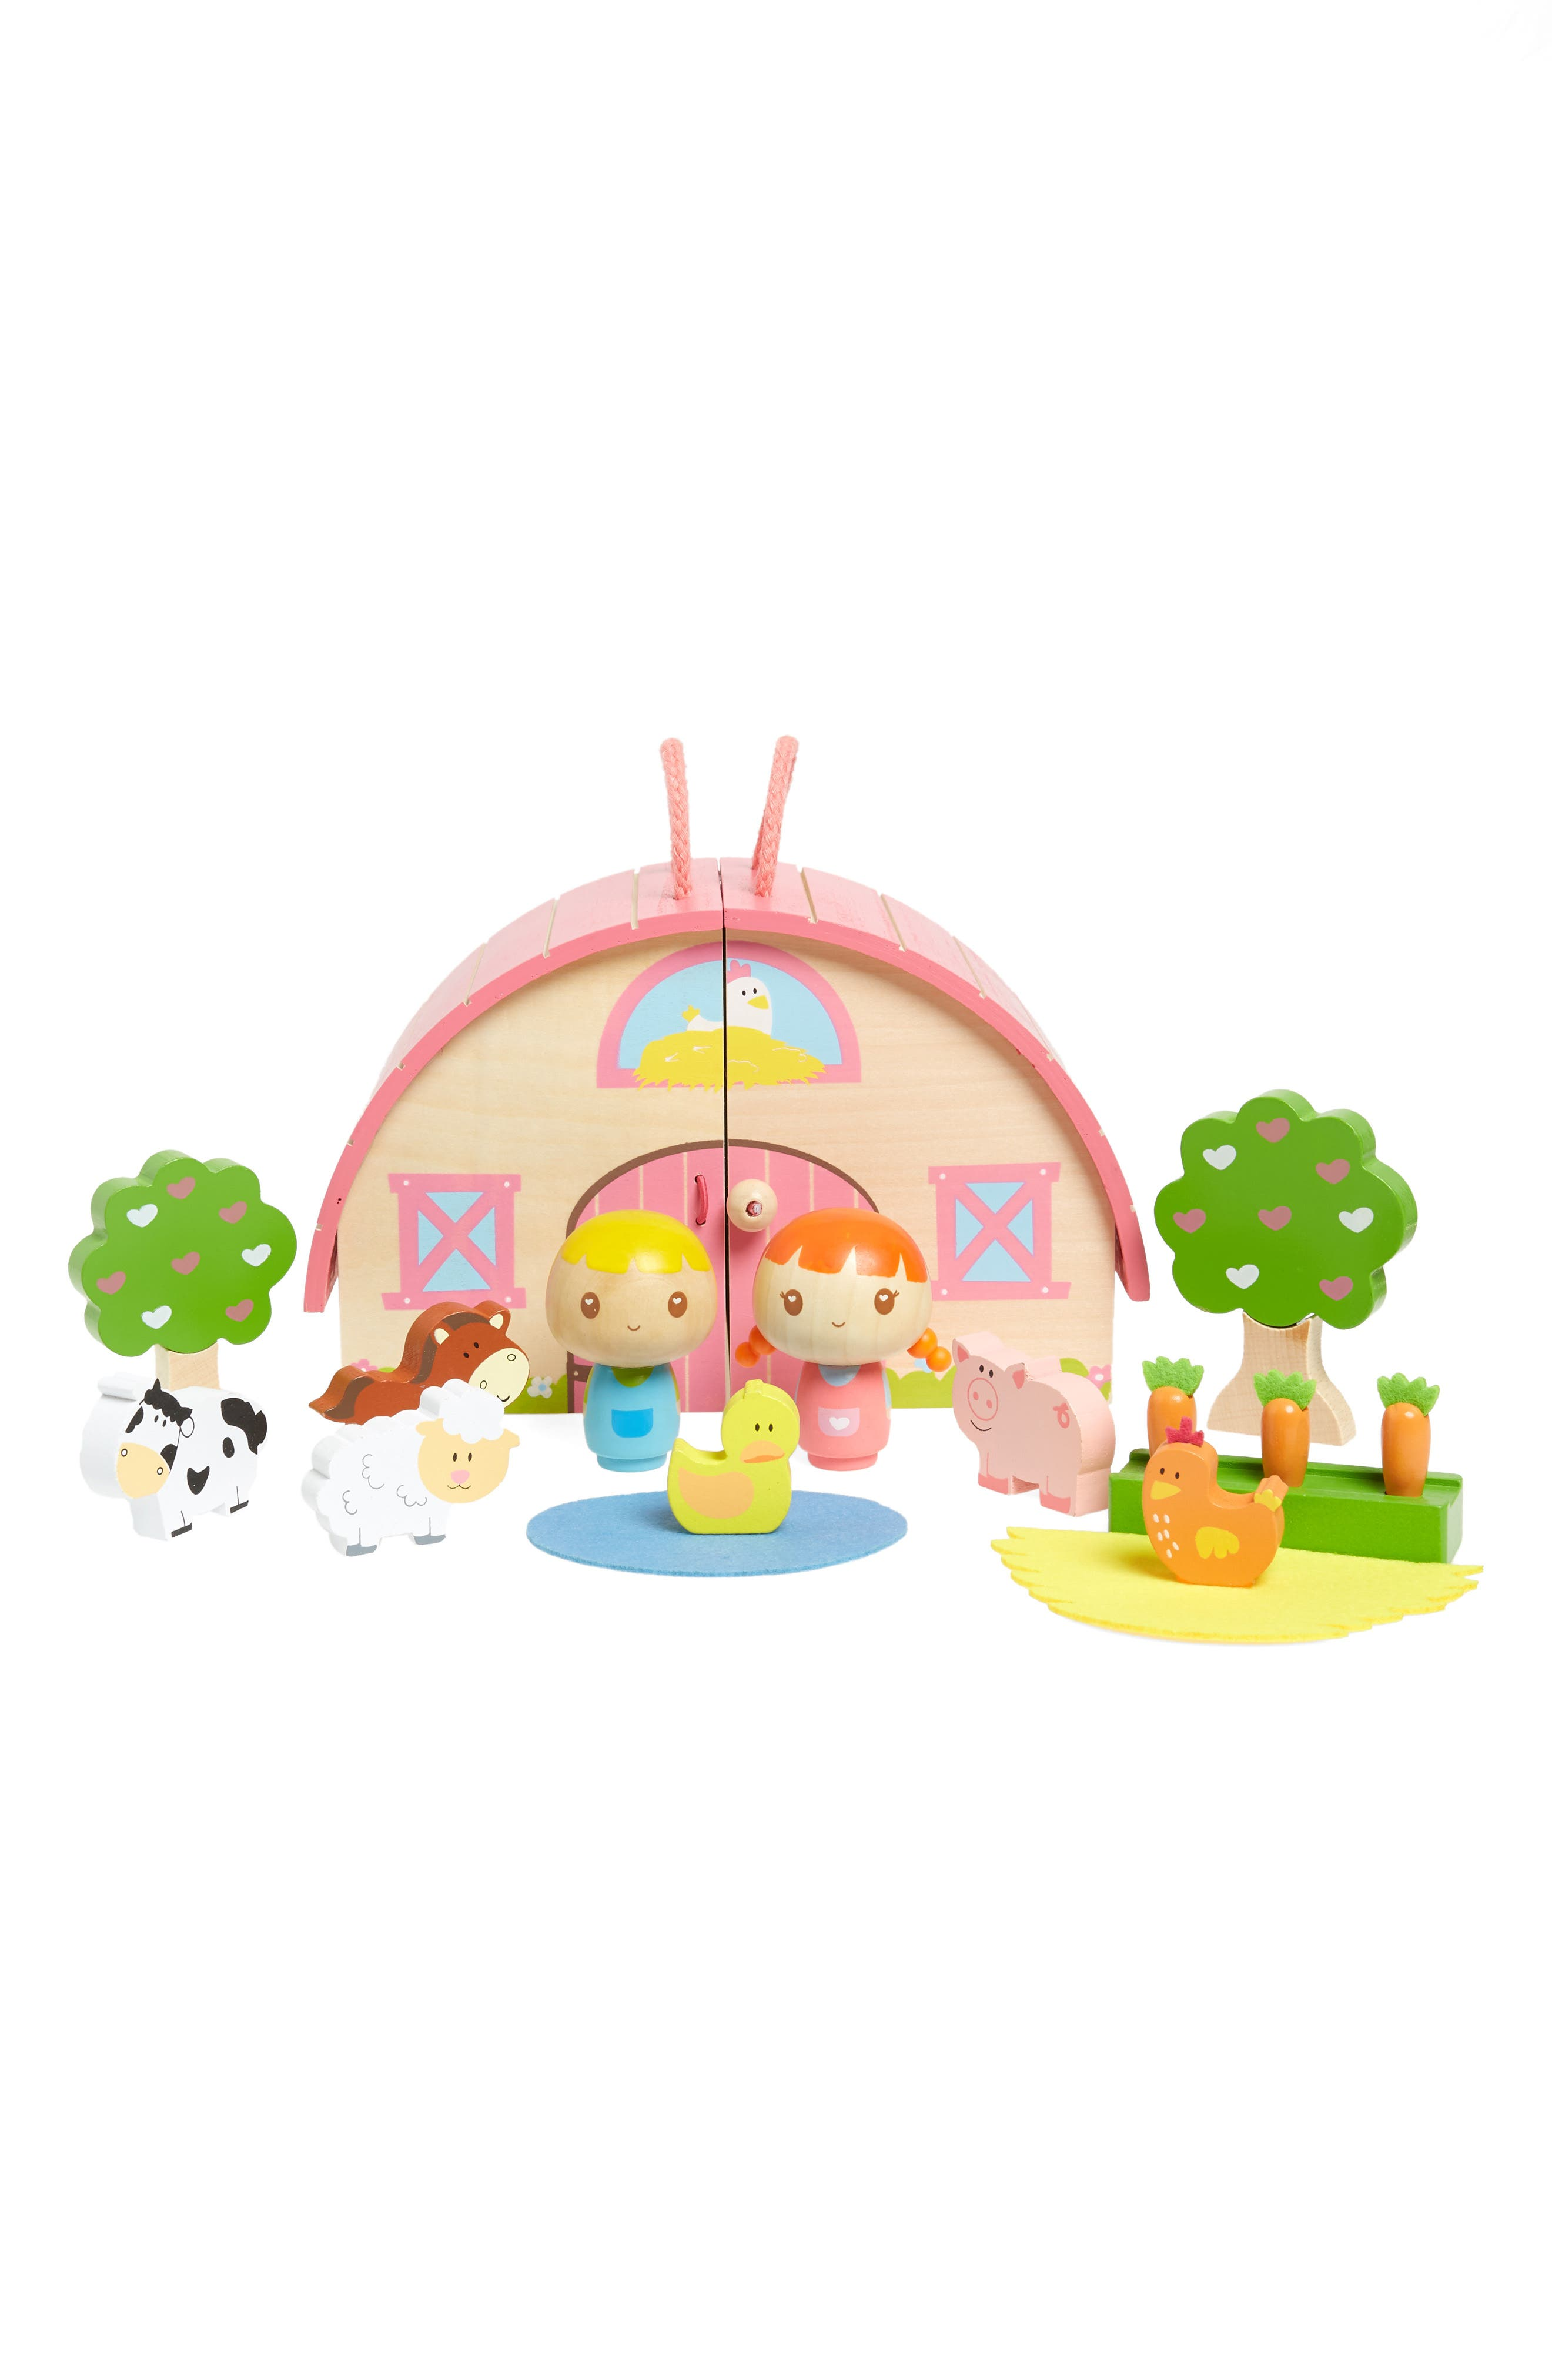 Sunrise Farm Wooden Play Set,                             Main thumbnail 1, color,                             White And Pink